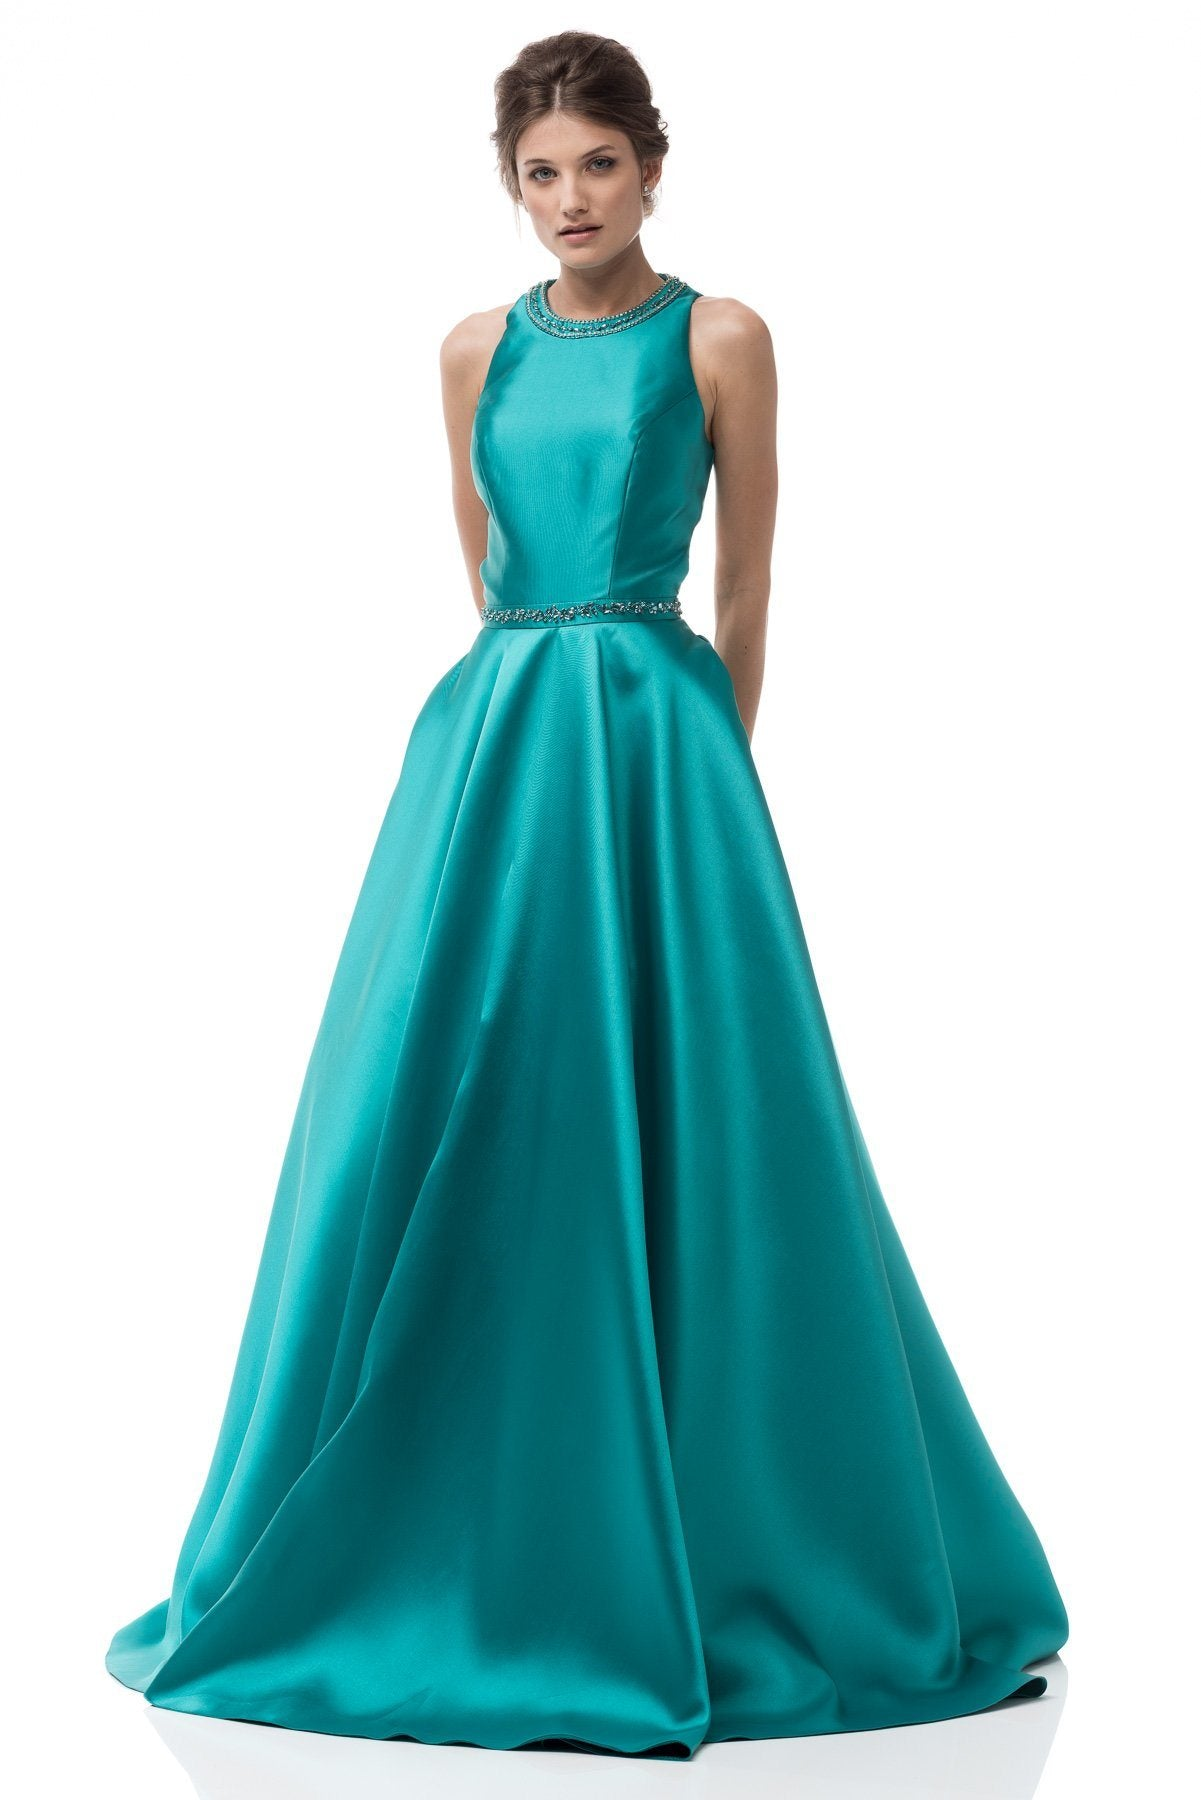 Scoop neckline trendy a-line ball gown formal dress BC# MD2016747 ...